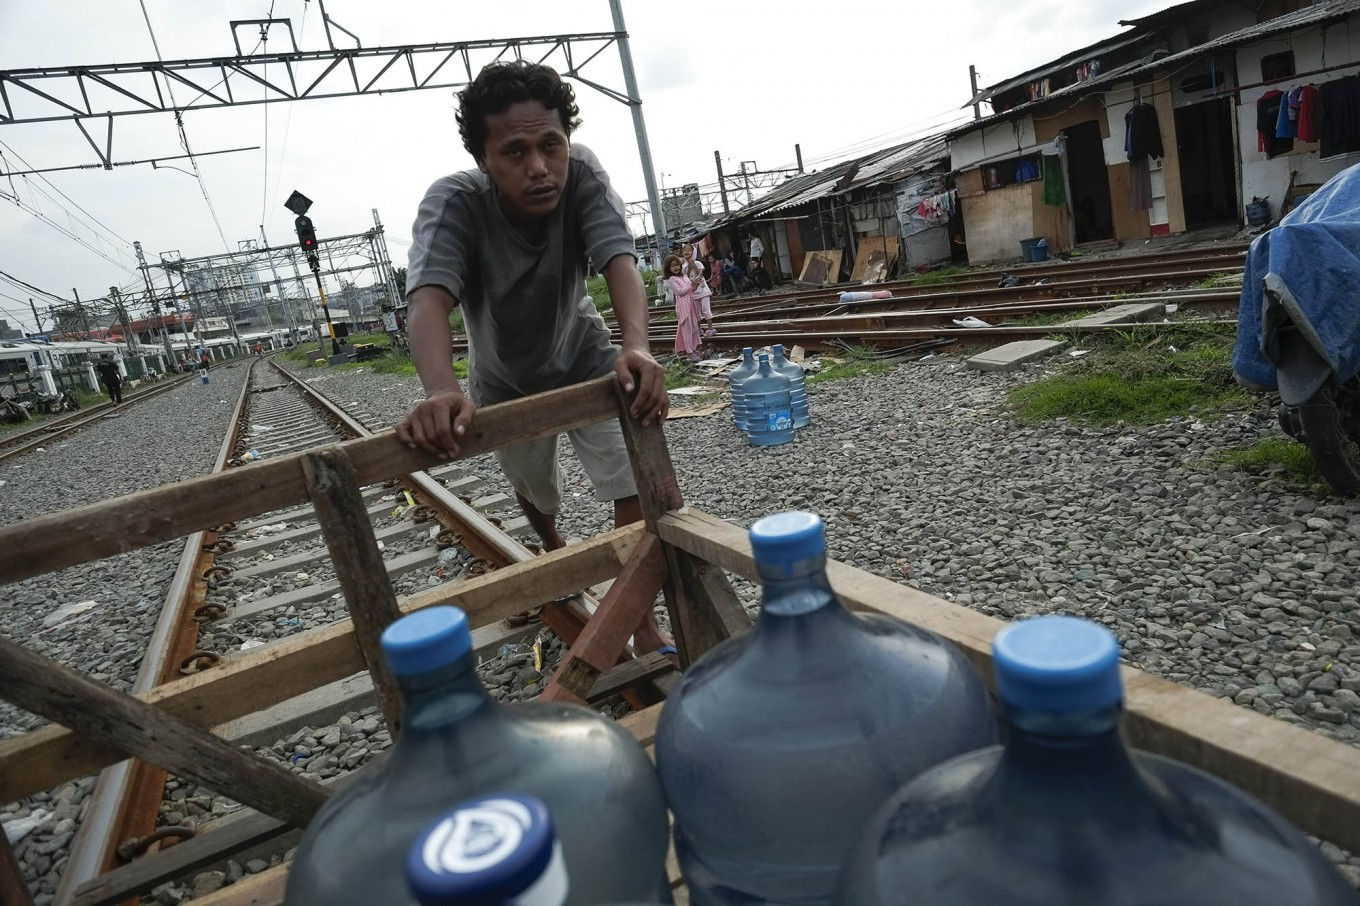 Heavy load: Pio pushes his cart of water bottles on a railway line in Kampung Muka, Ancol, North Jakarta. He has to memorize the train schedules to allow him to use his cart on the track safely. JP/ Jerry Adiguna